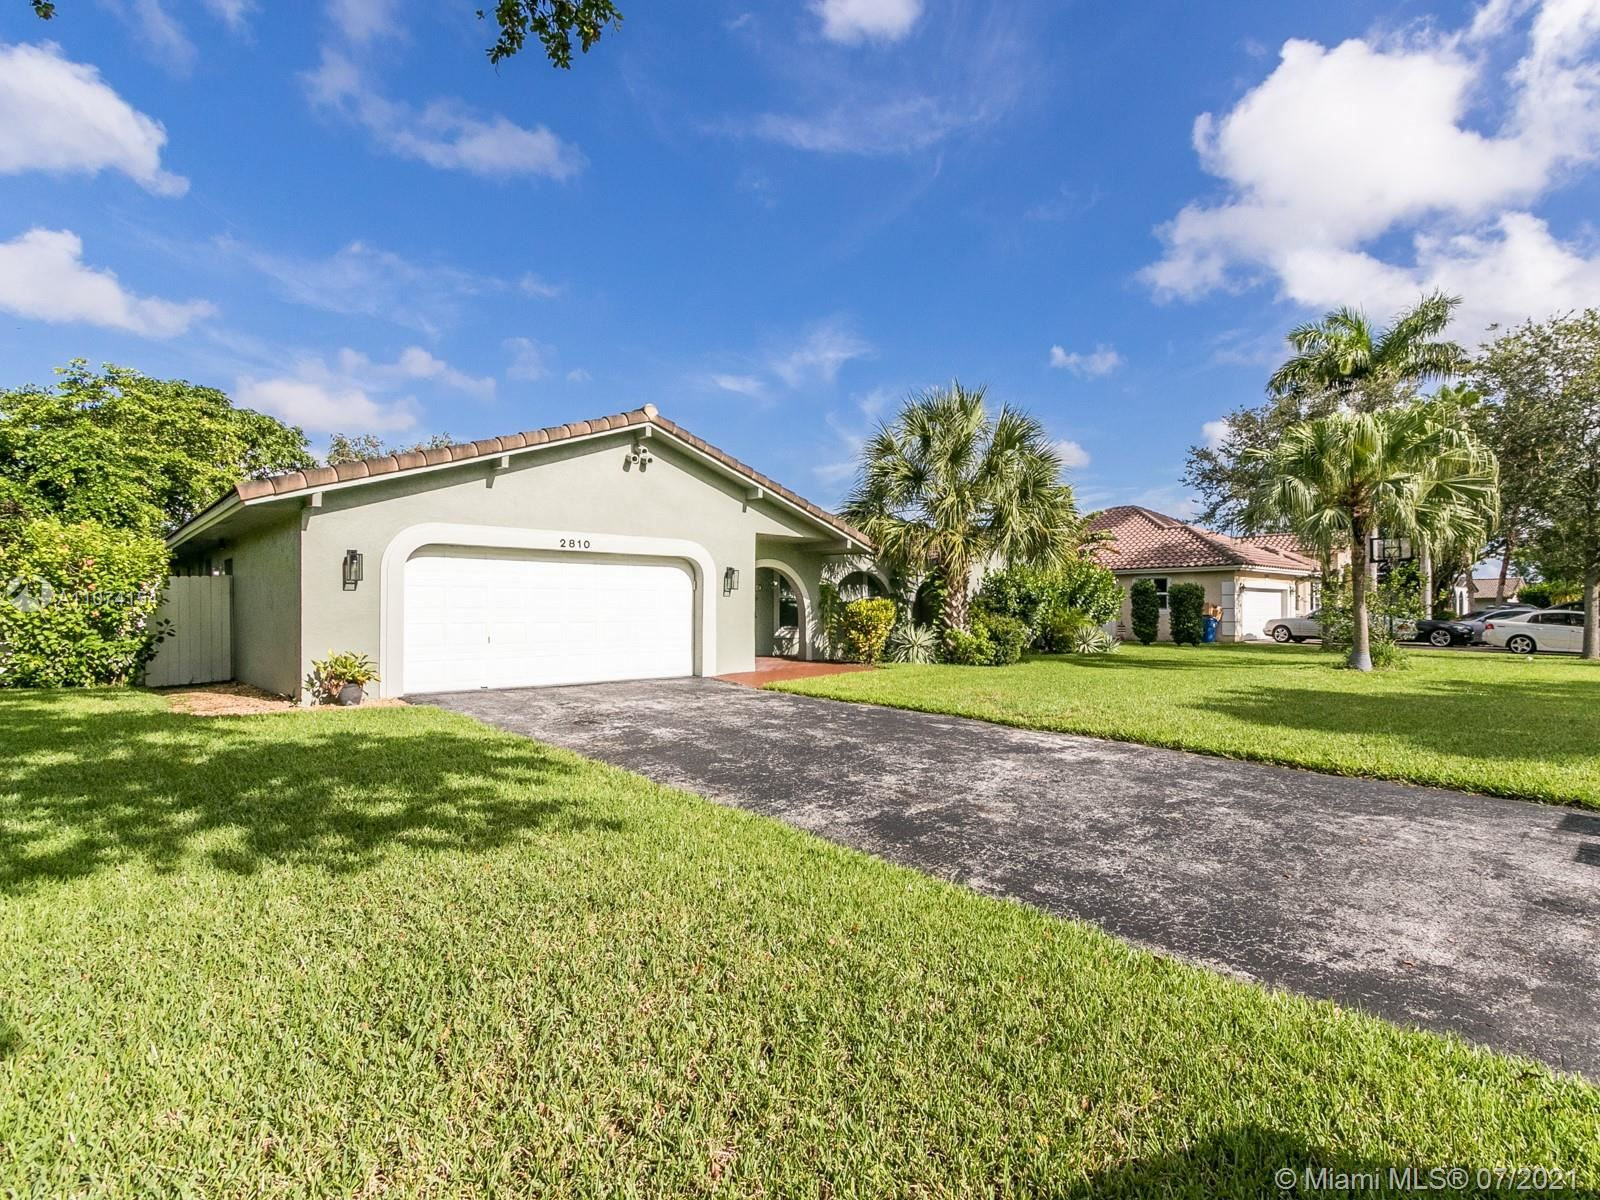 Photo of 2810 NW 115th Ter, Coral Springs, FL 33065 (MLS # A11074154)